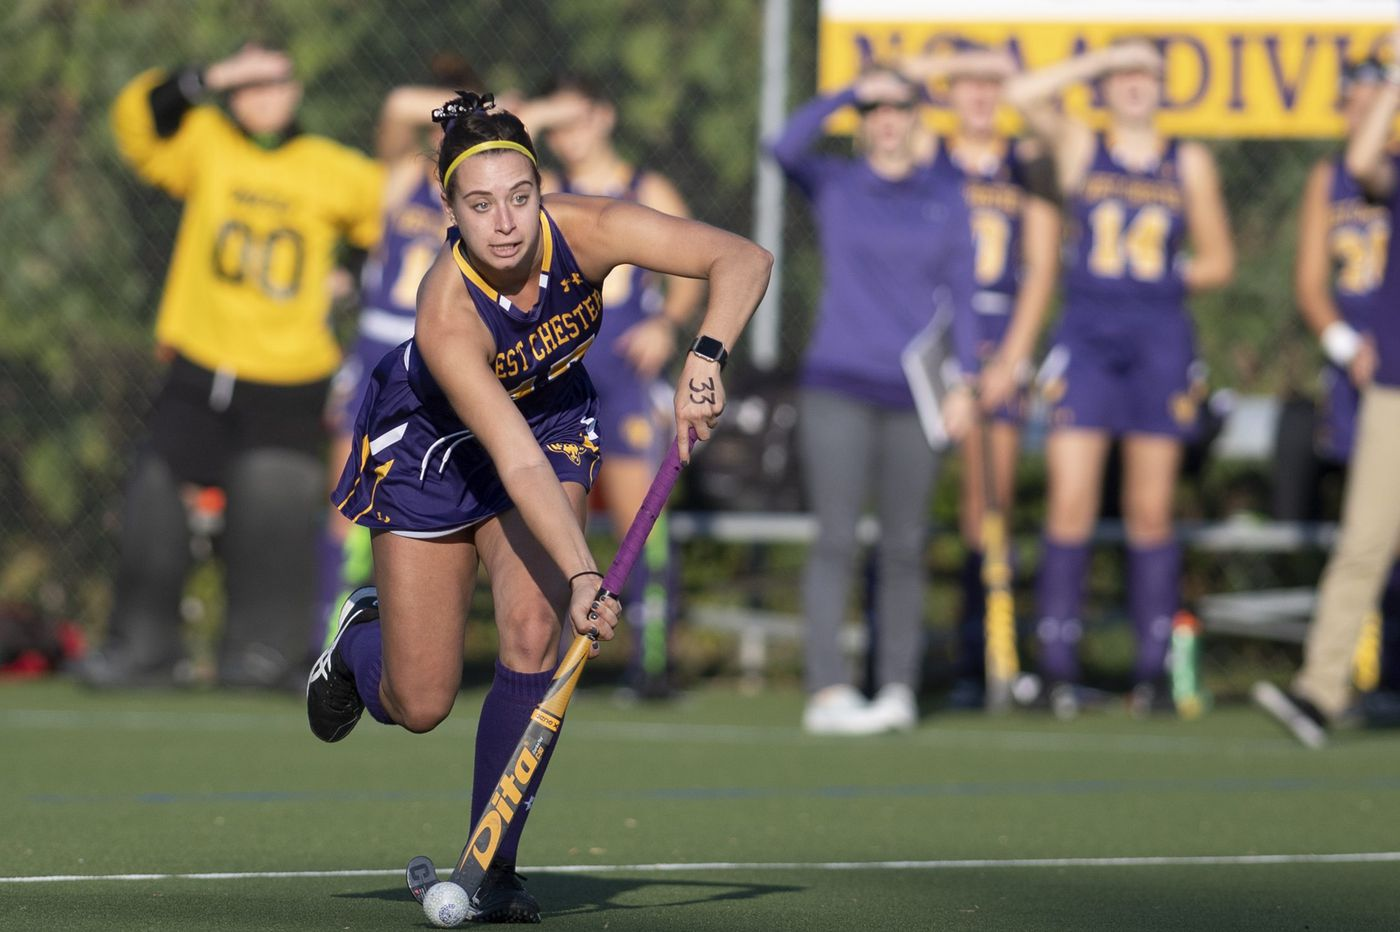 West Chester field hockey team hoping for a better finish this time